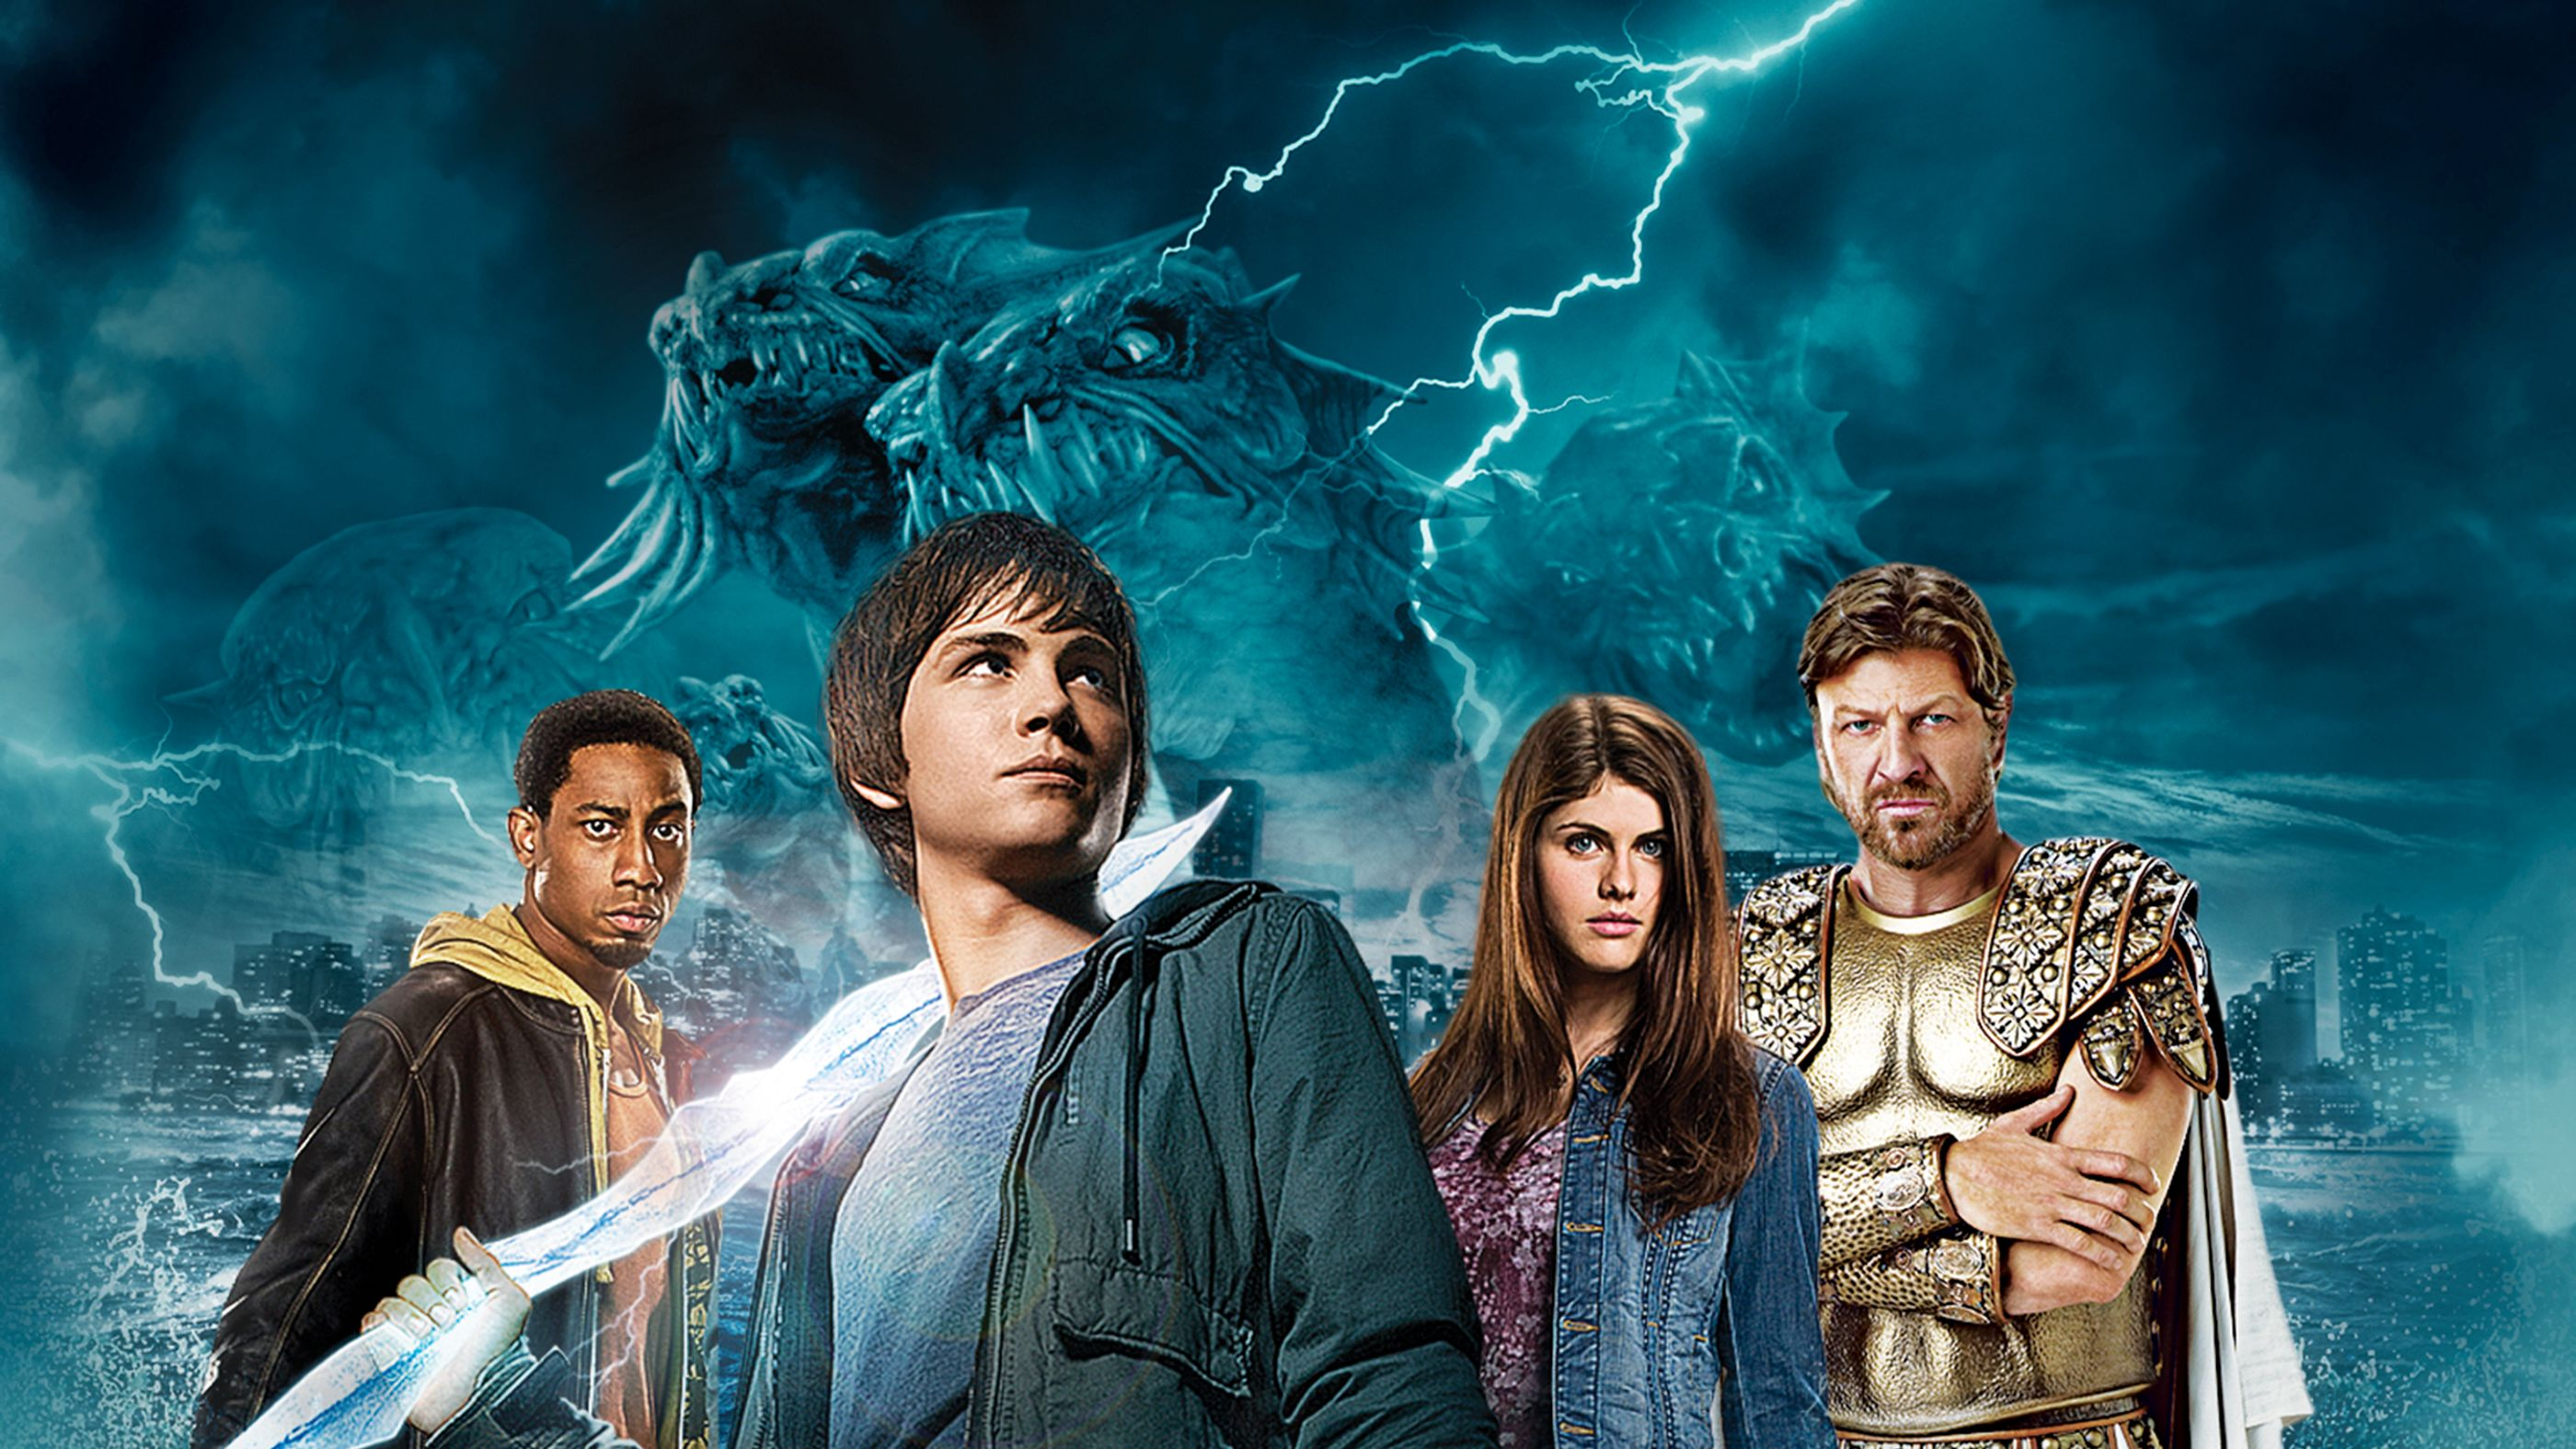 Percy Jackson The Olympians The Lightning Thief Full Movie